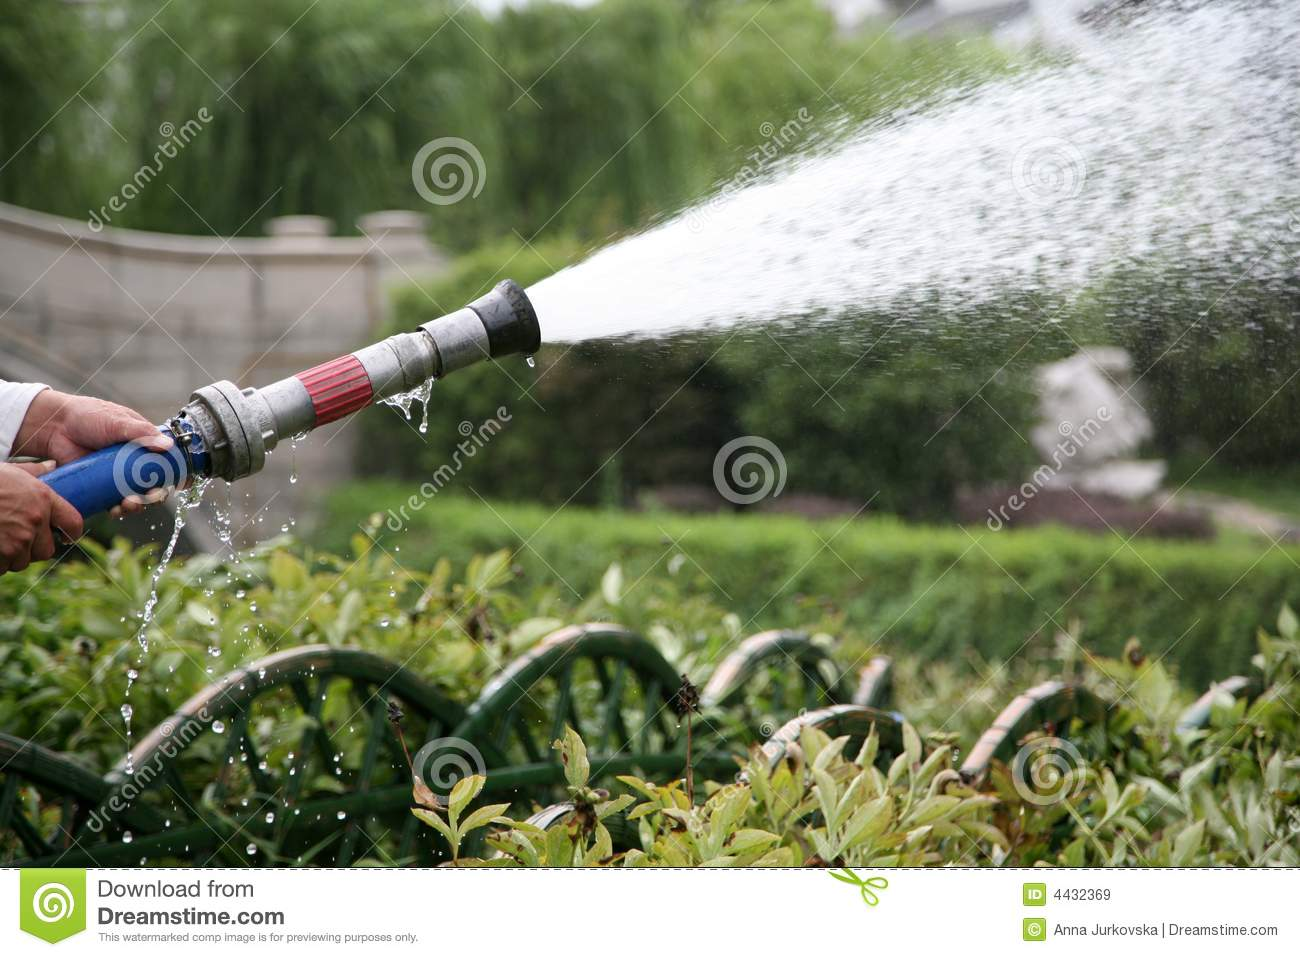 Hose spray image